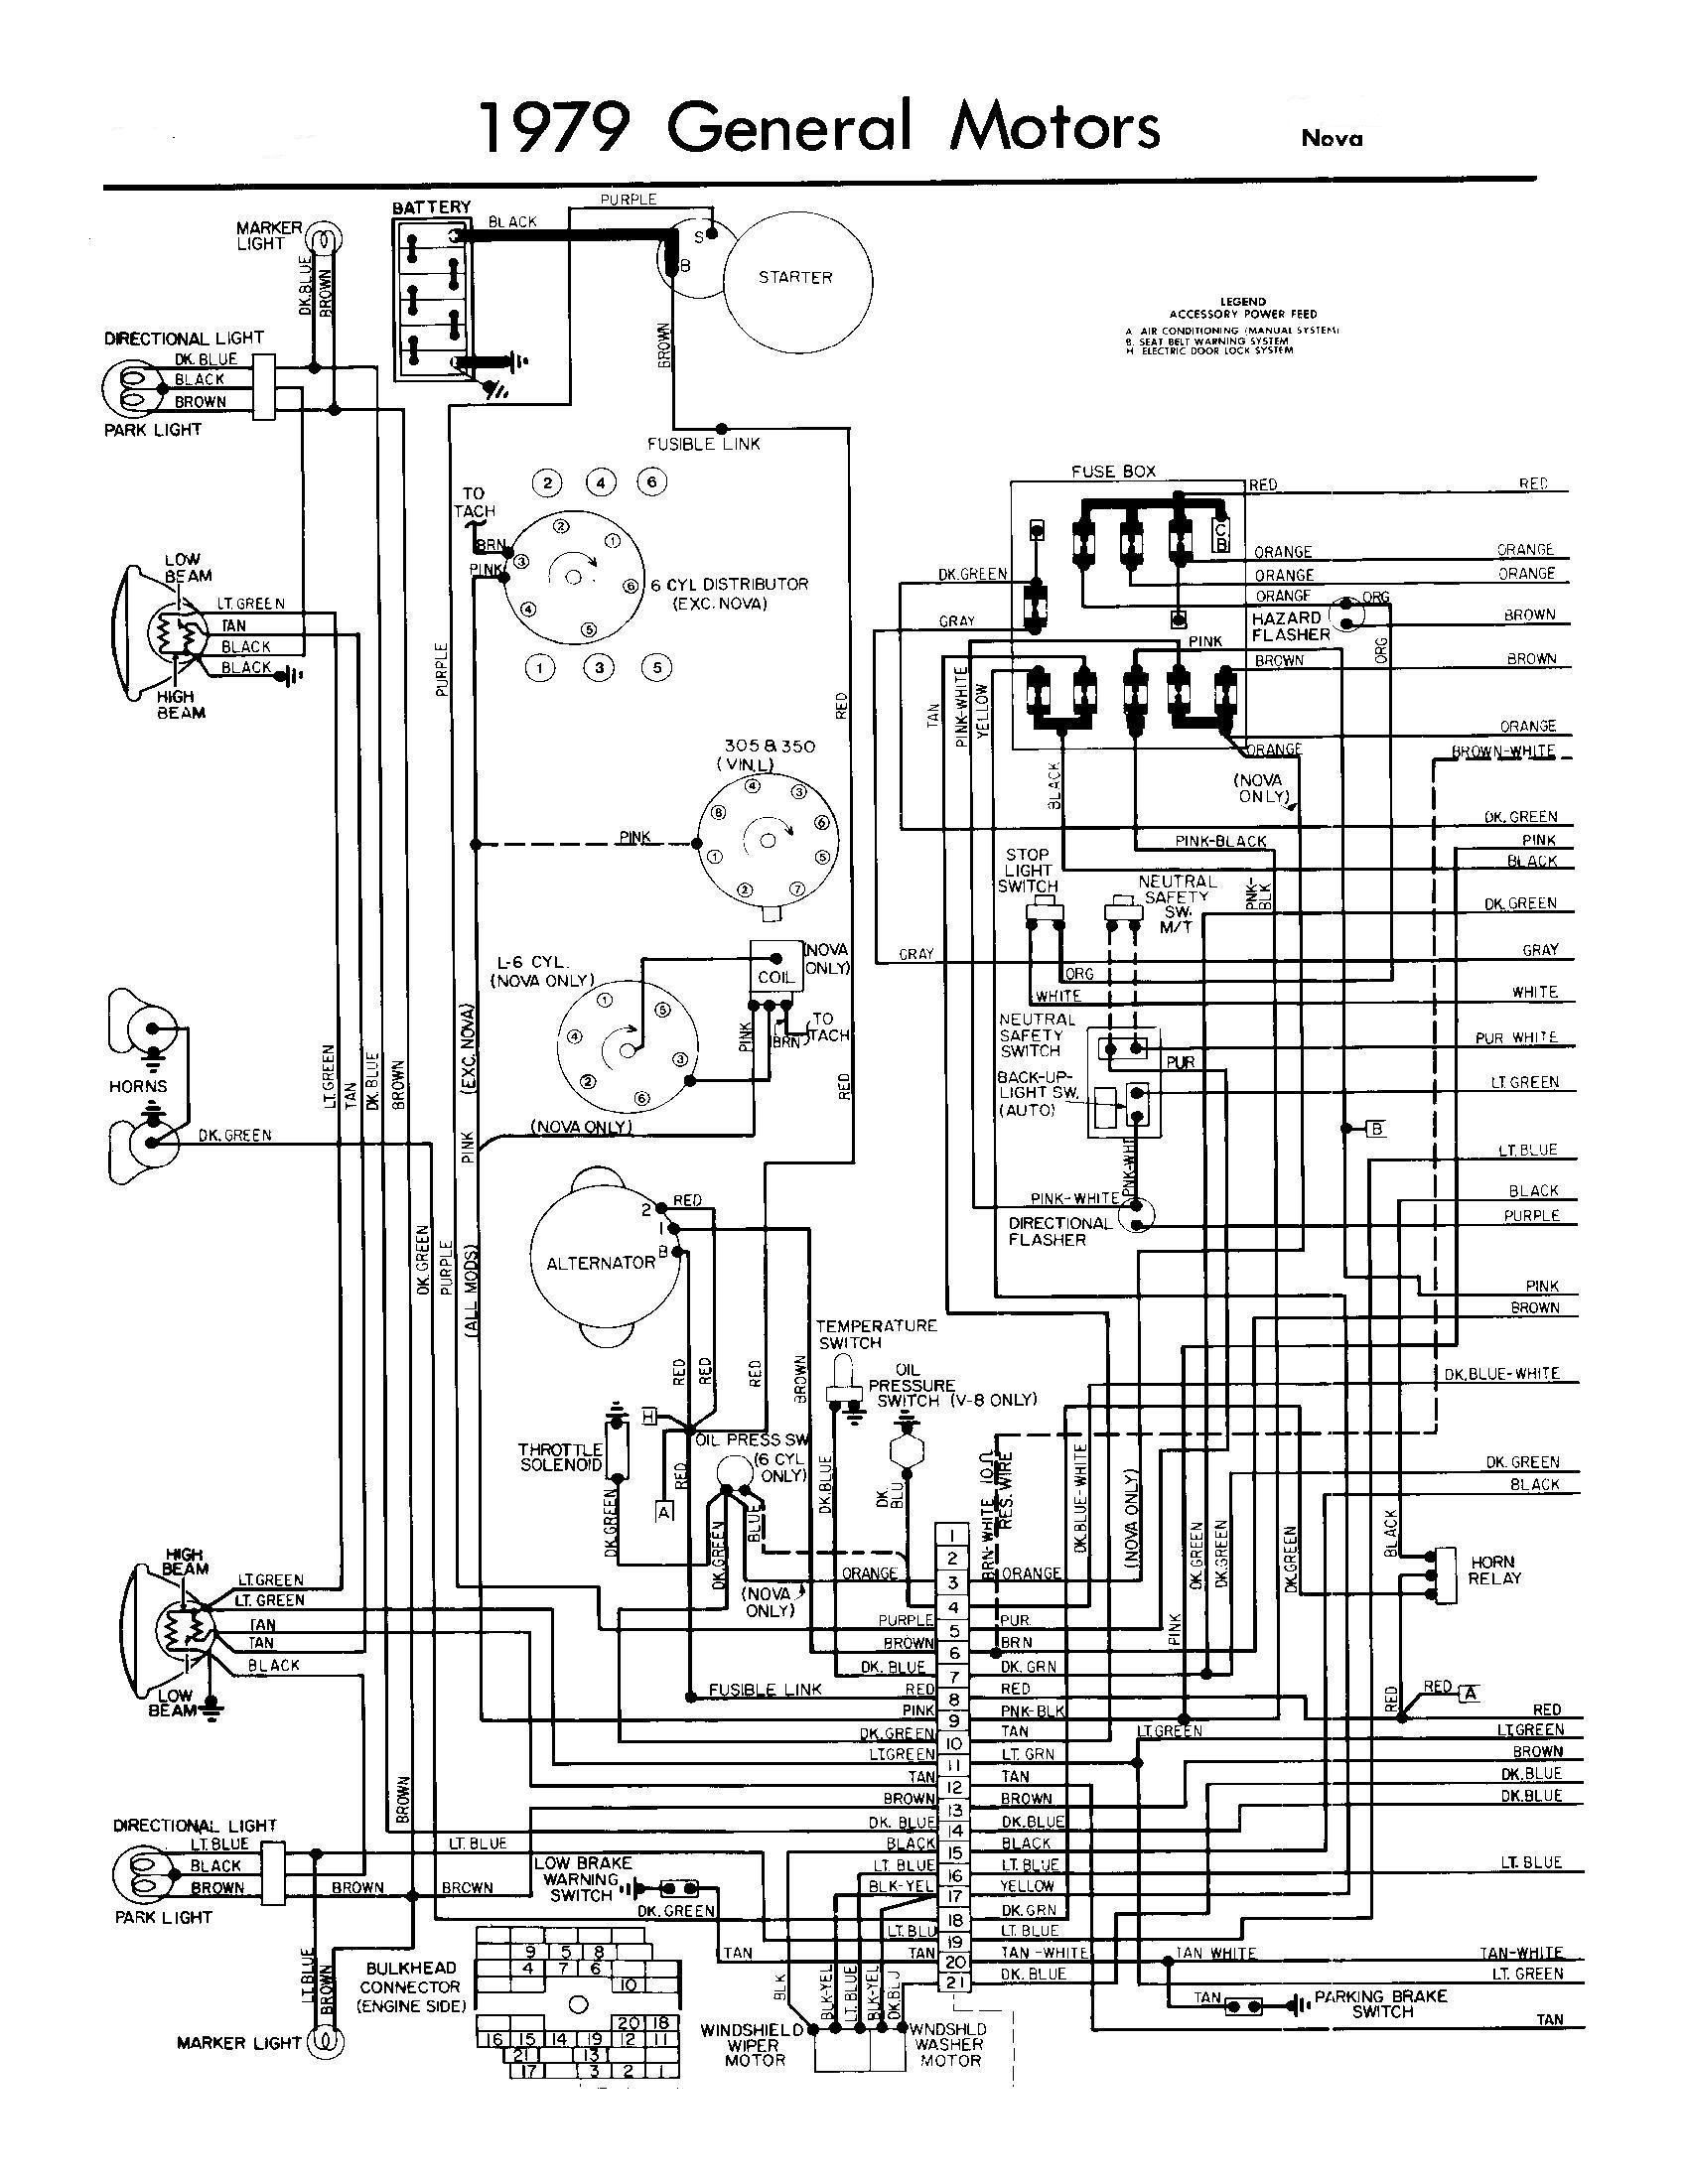 af30d80785d45bfeba8f1db47439920a 79 chevy truck wiring diagram 82 chevy truck wiring diagram chevy 350 wiring diagram at readyjetset.co